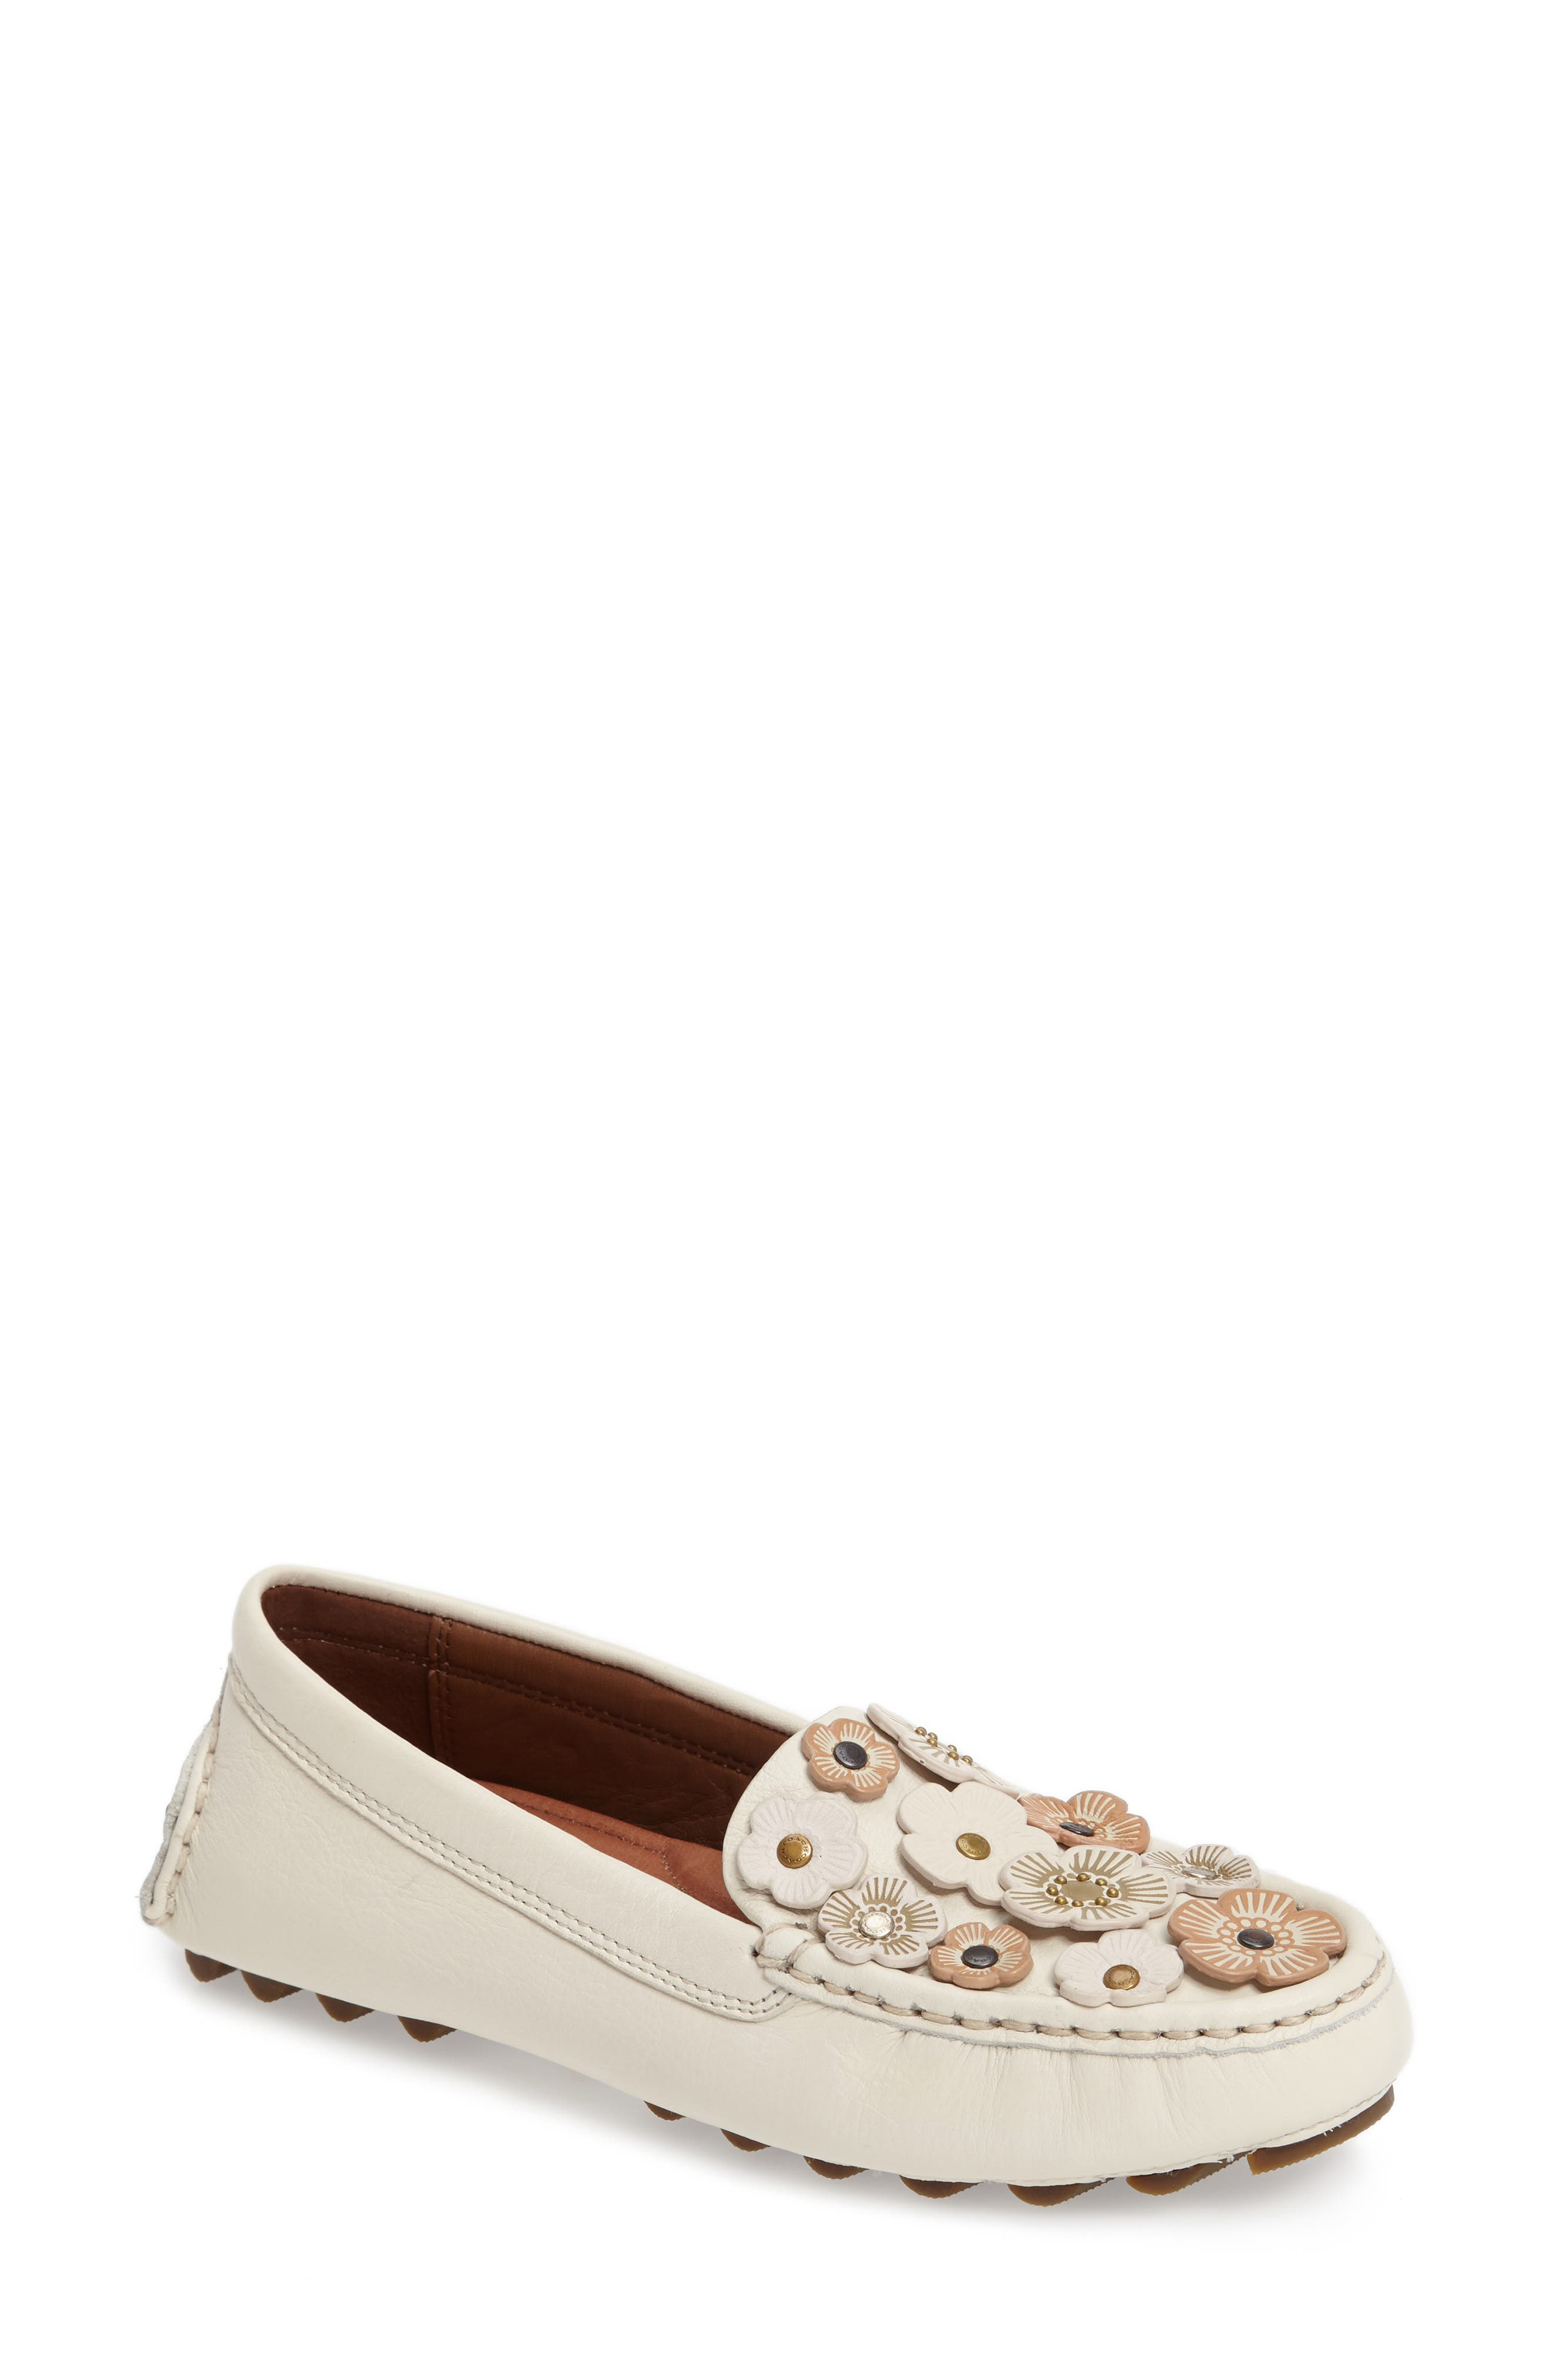 Alternate Image 1 Selected - COACH Tea Rose Driving Loafer (Women)